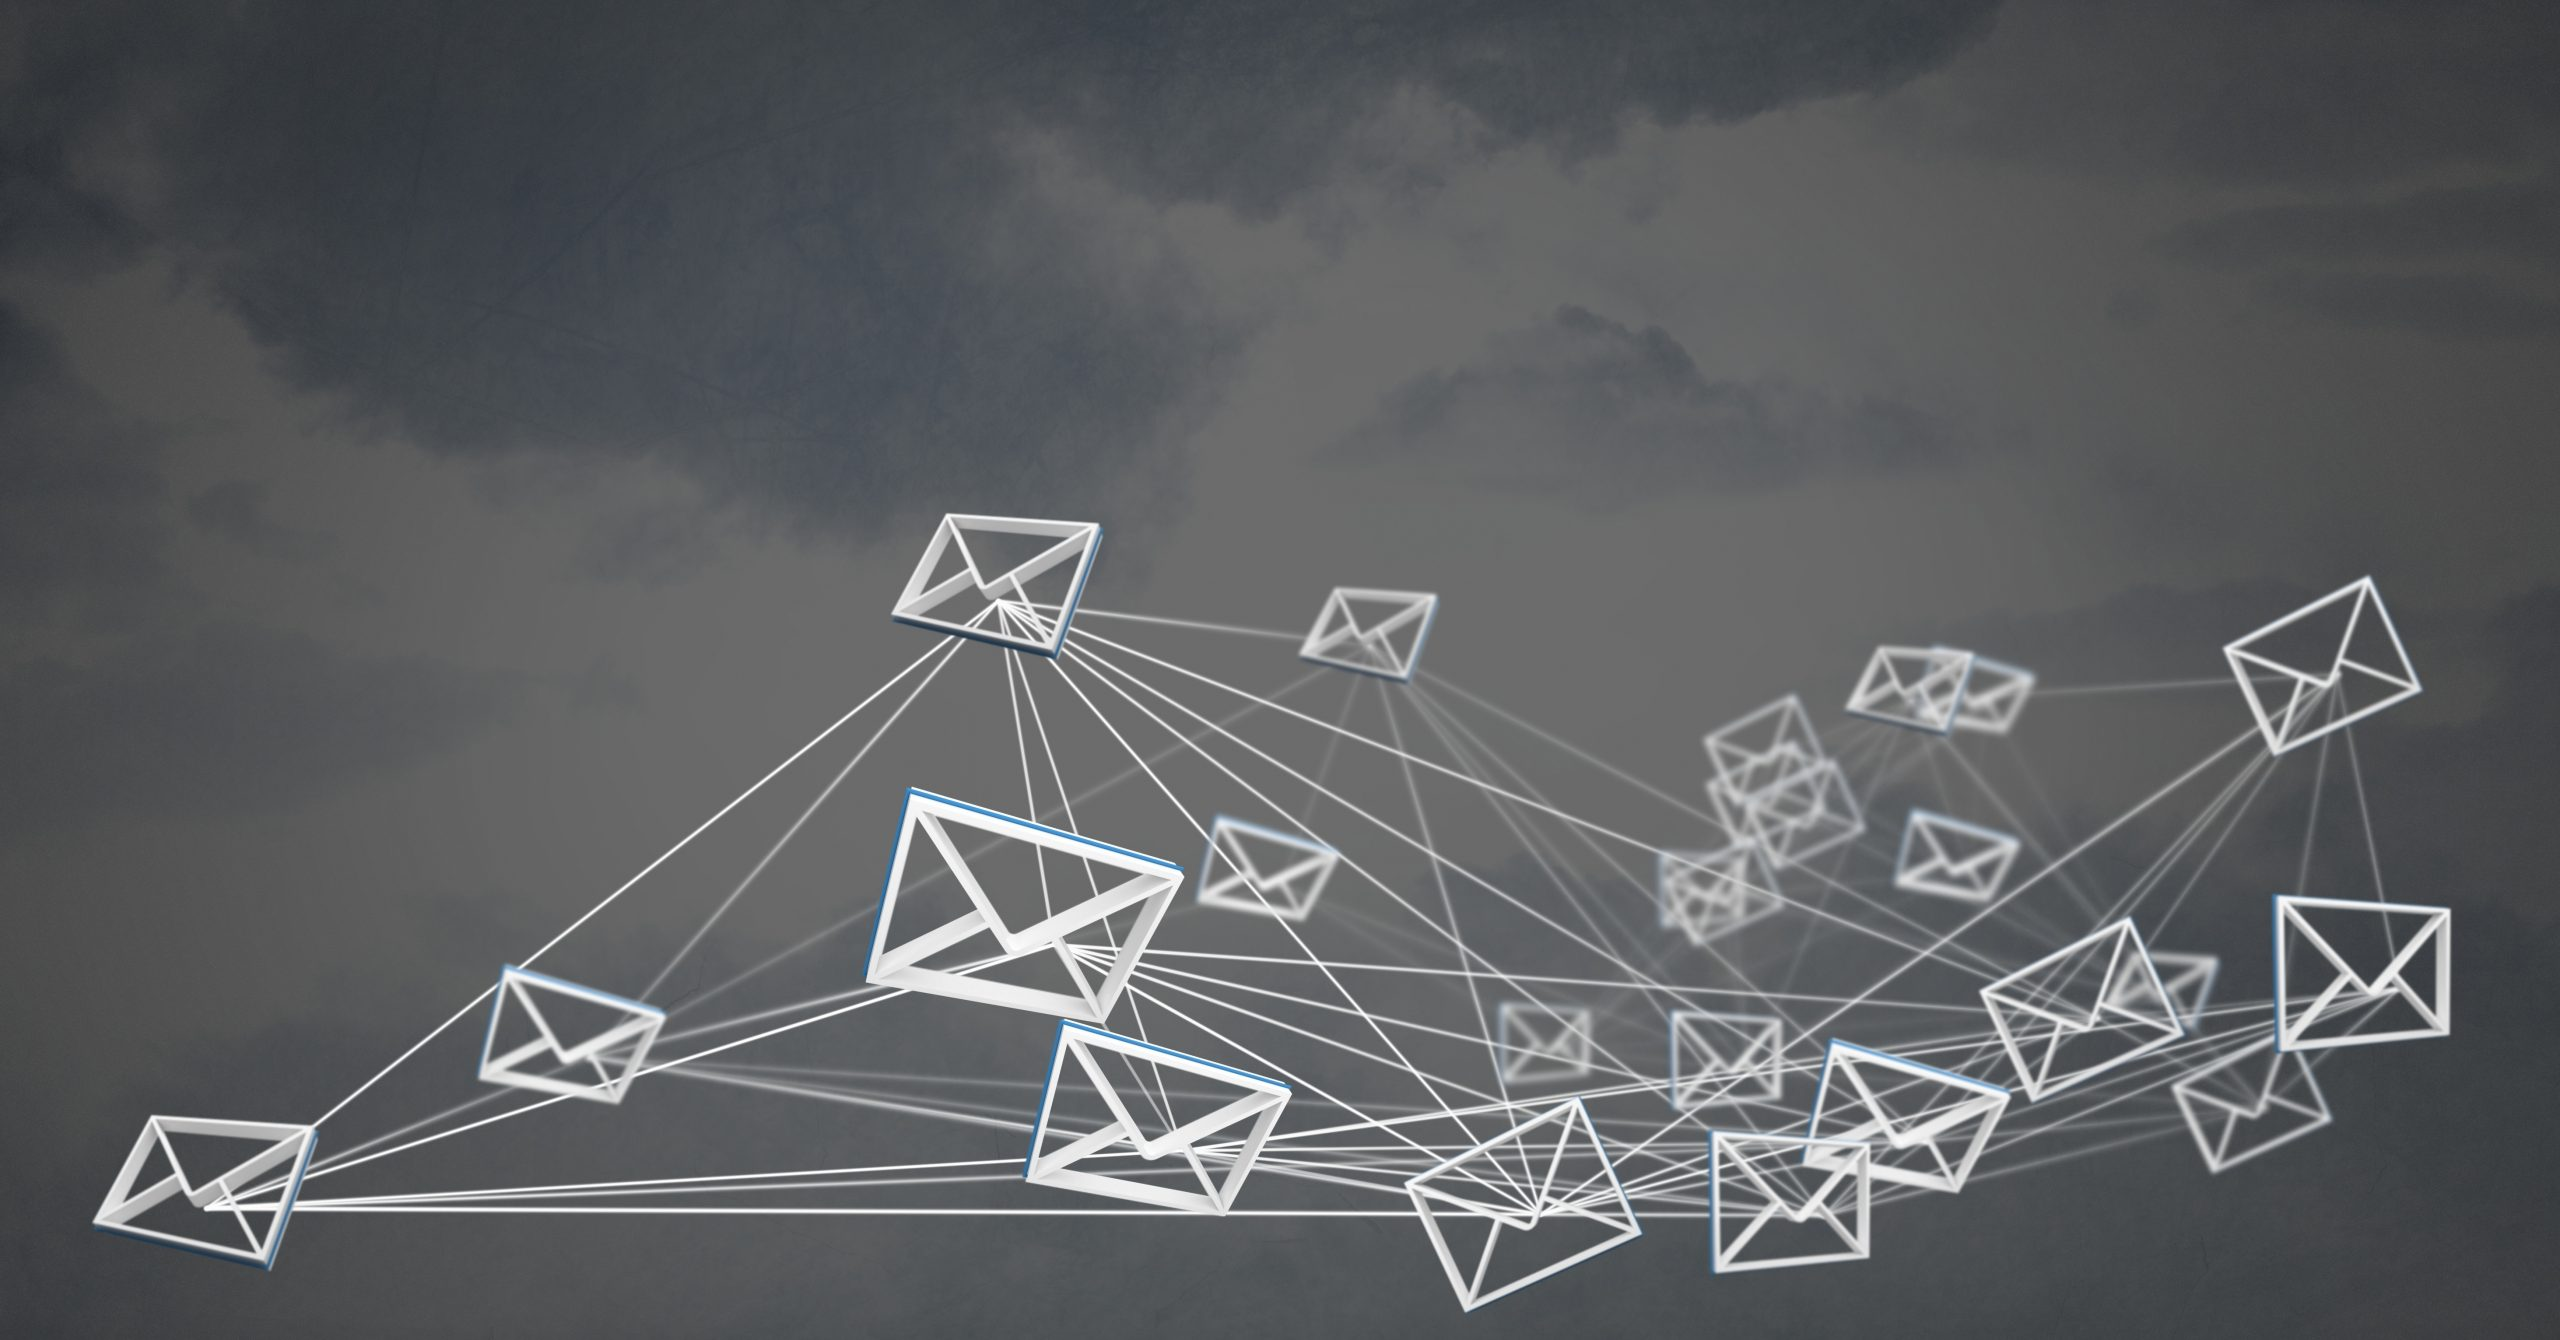 bunch of 3d emails flying through sky, symbollizing affiliate email marketing